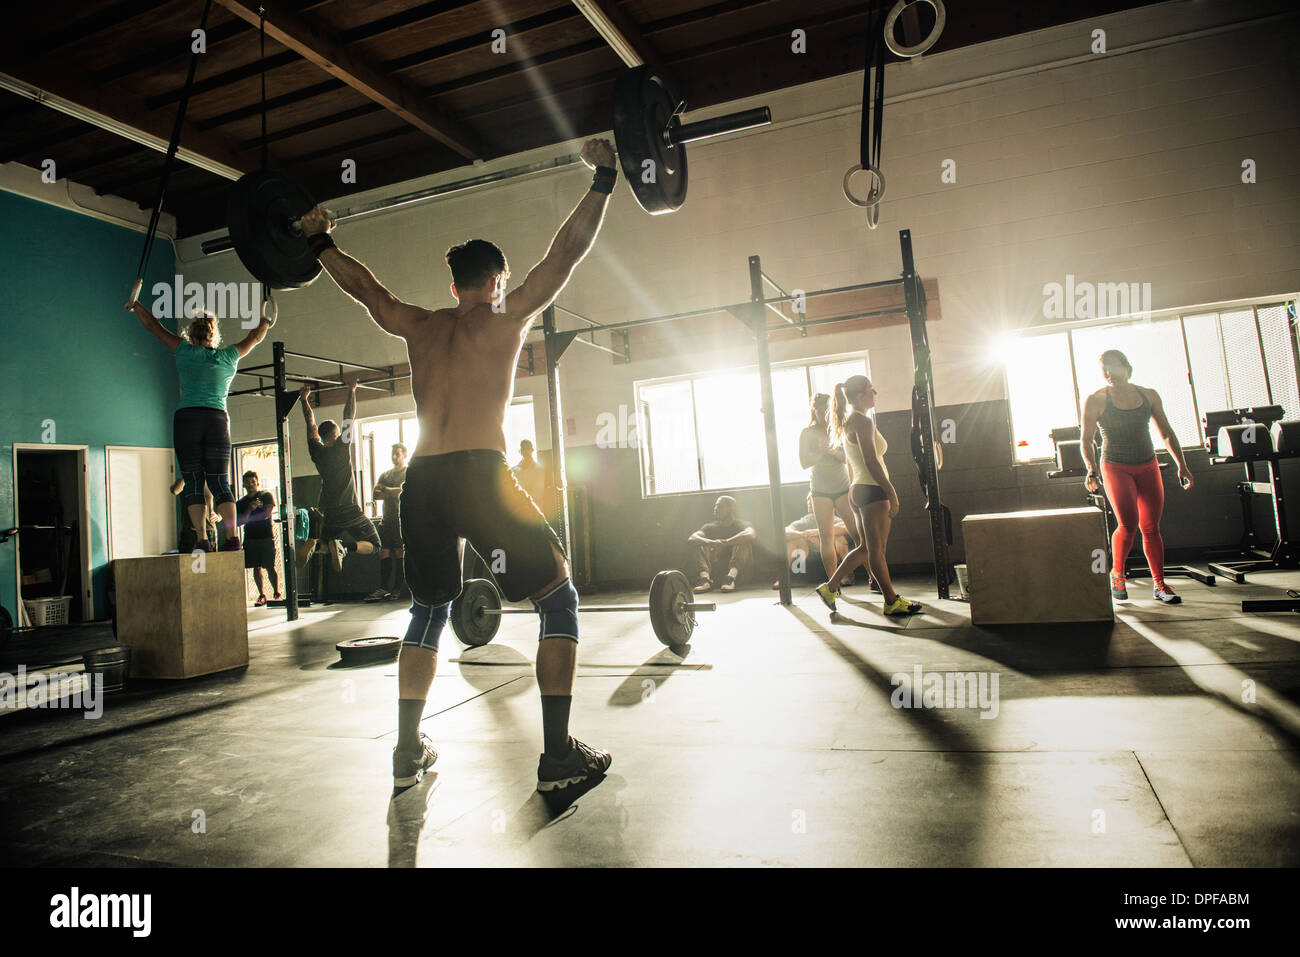 Group of people training in gymnasium - Stock Image